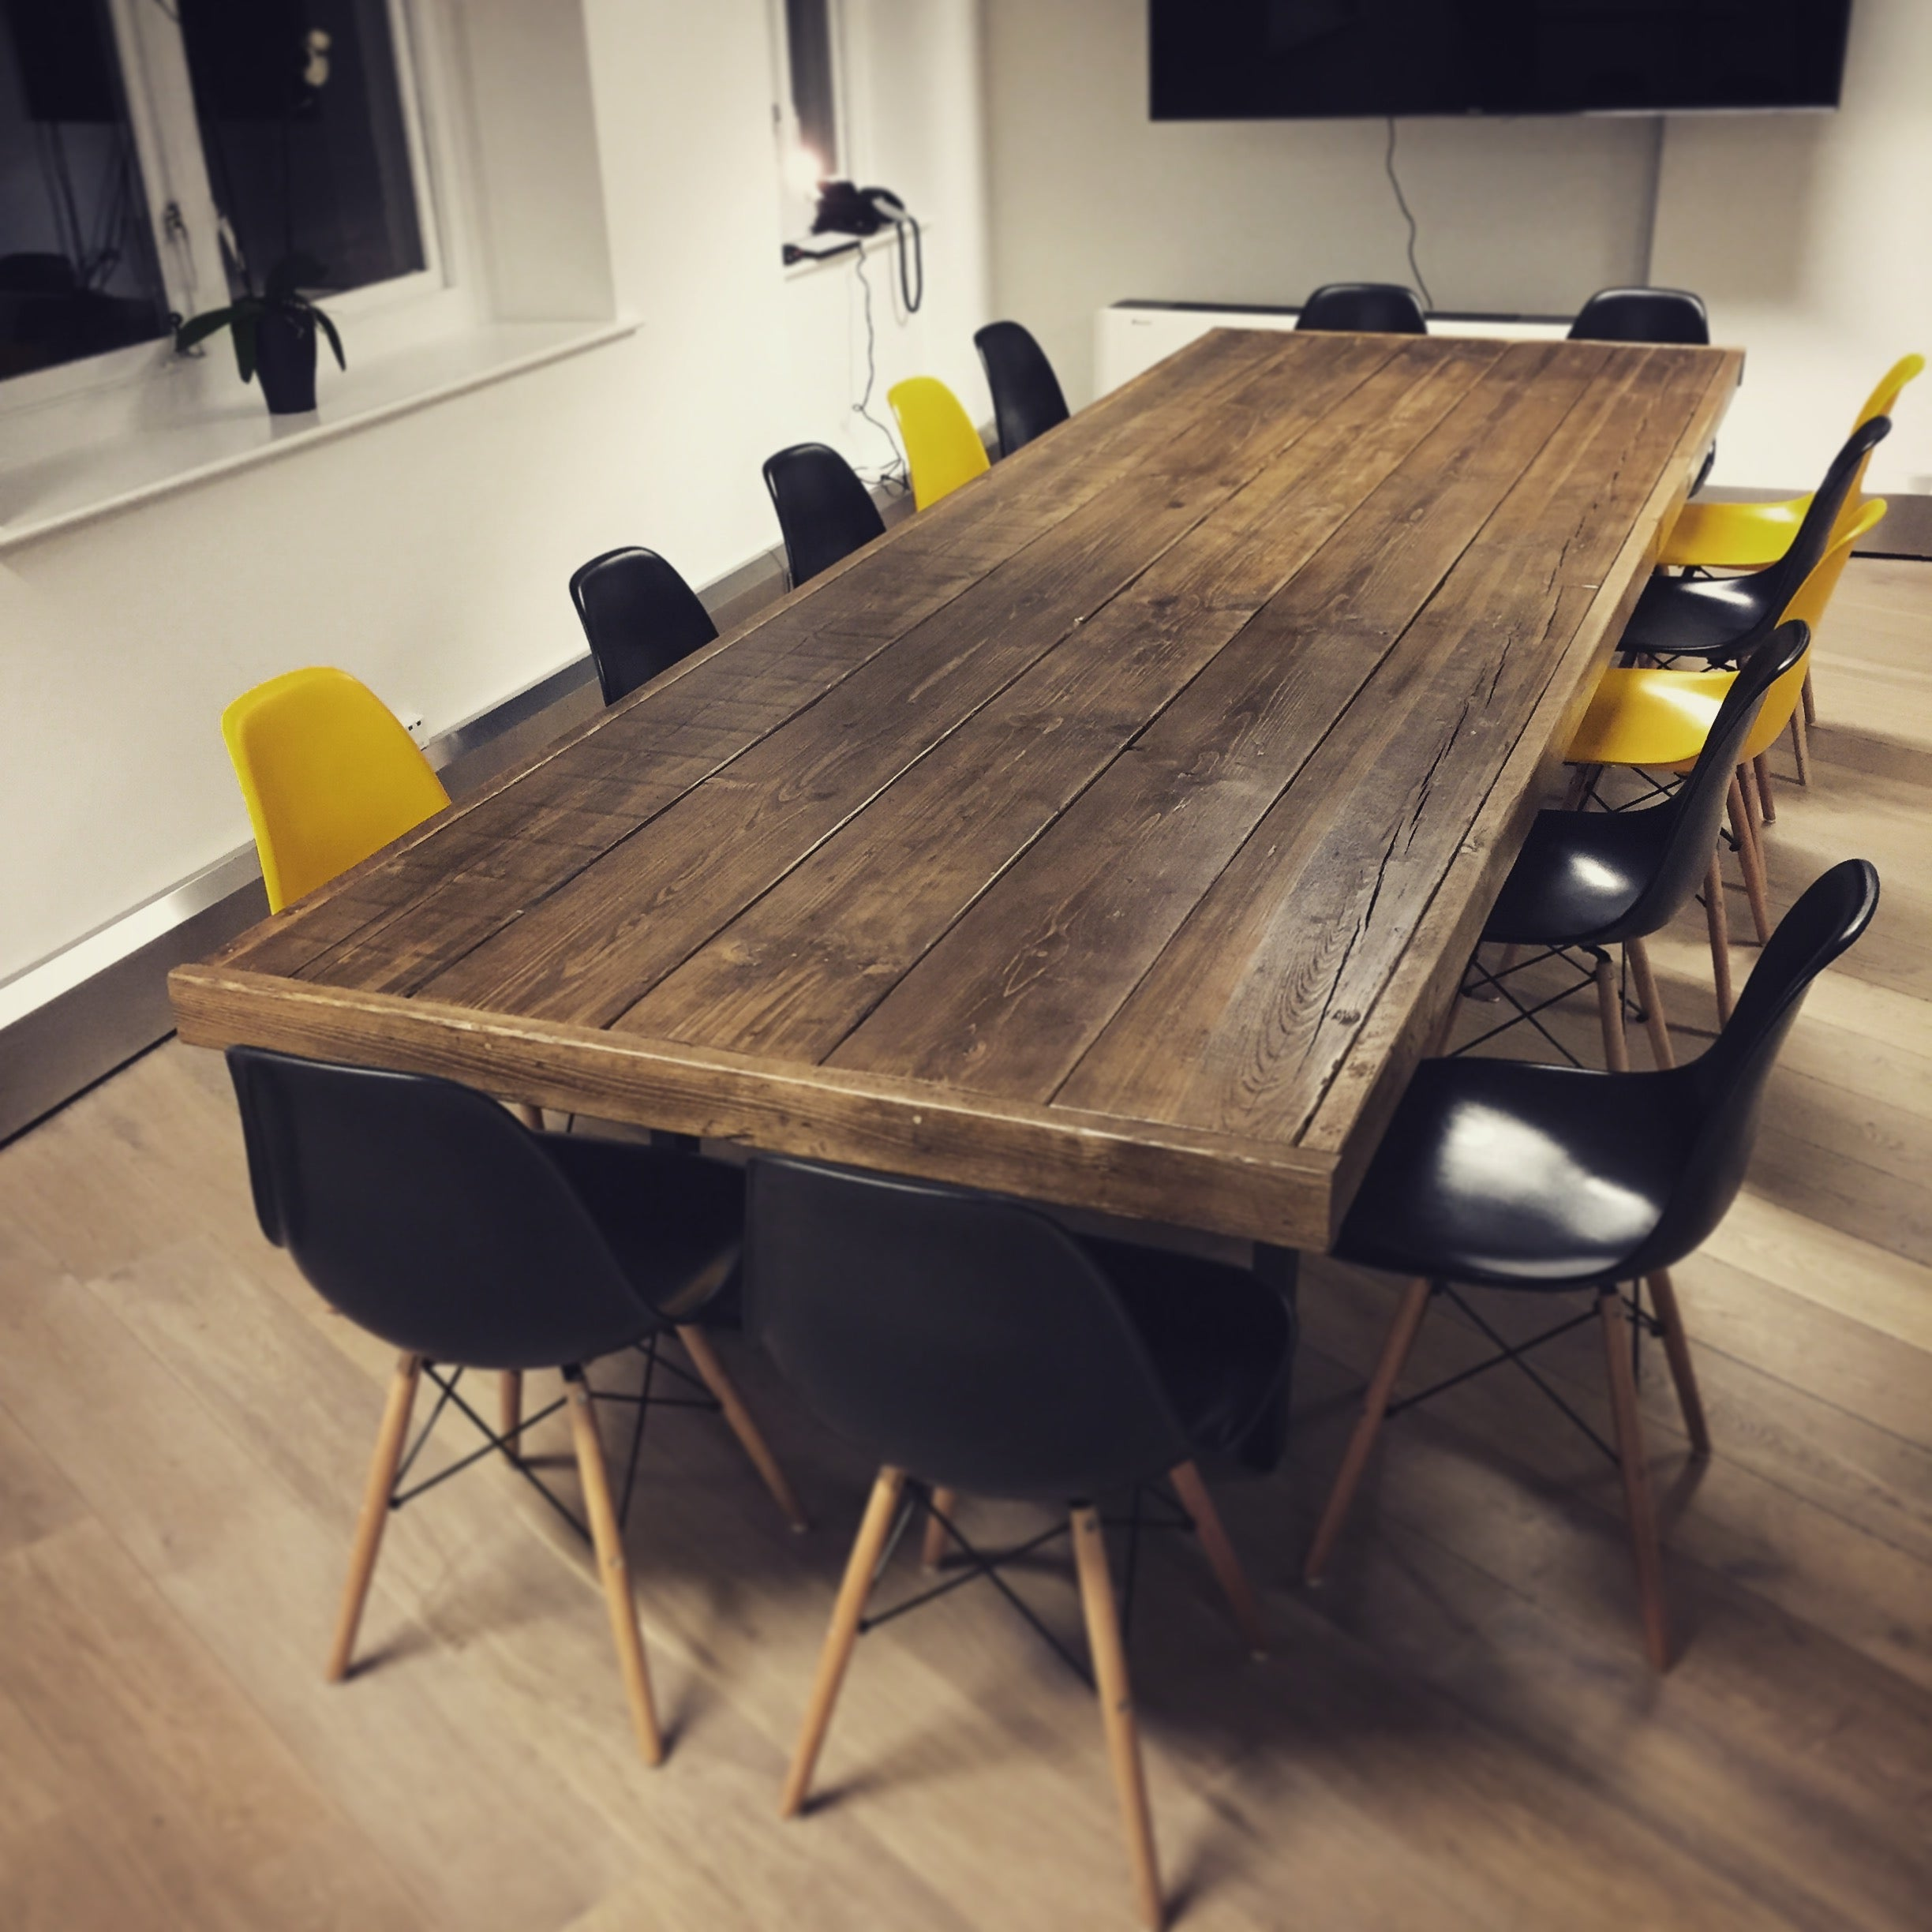 Reclaimed Wood 'Jules' Boardroom Table